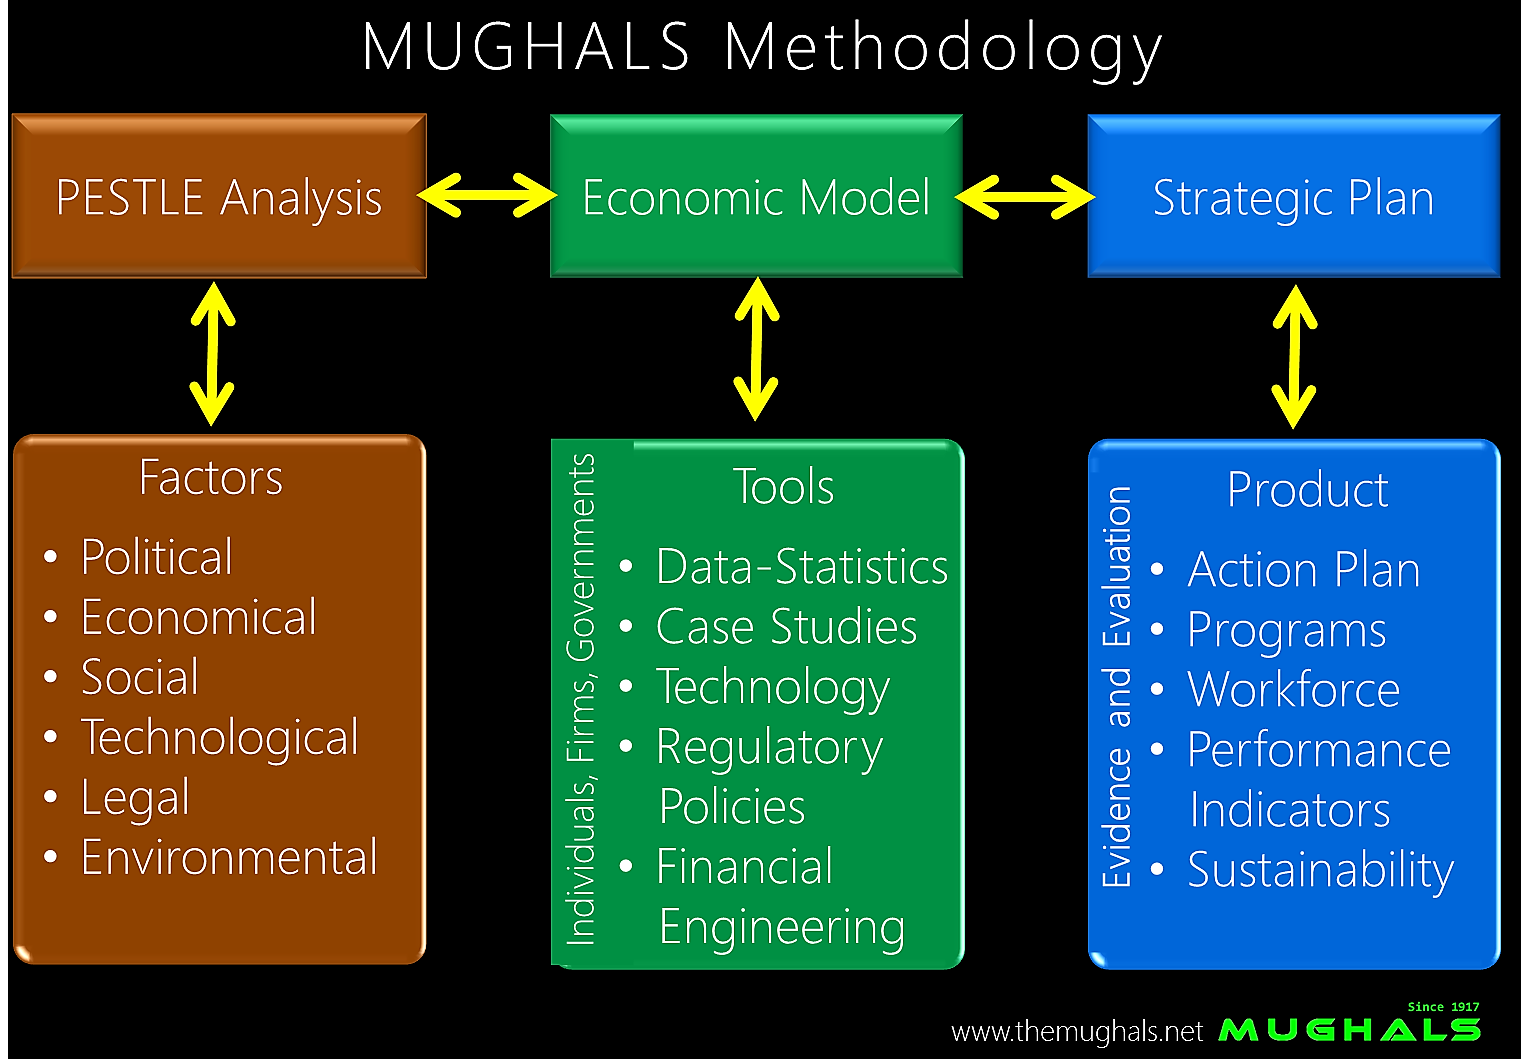 http://www.themughals.net/home-mughals/methodology